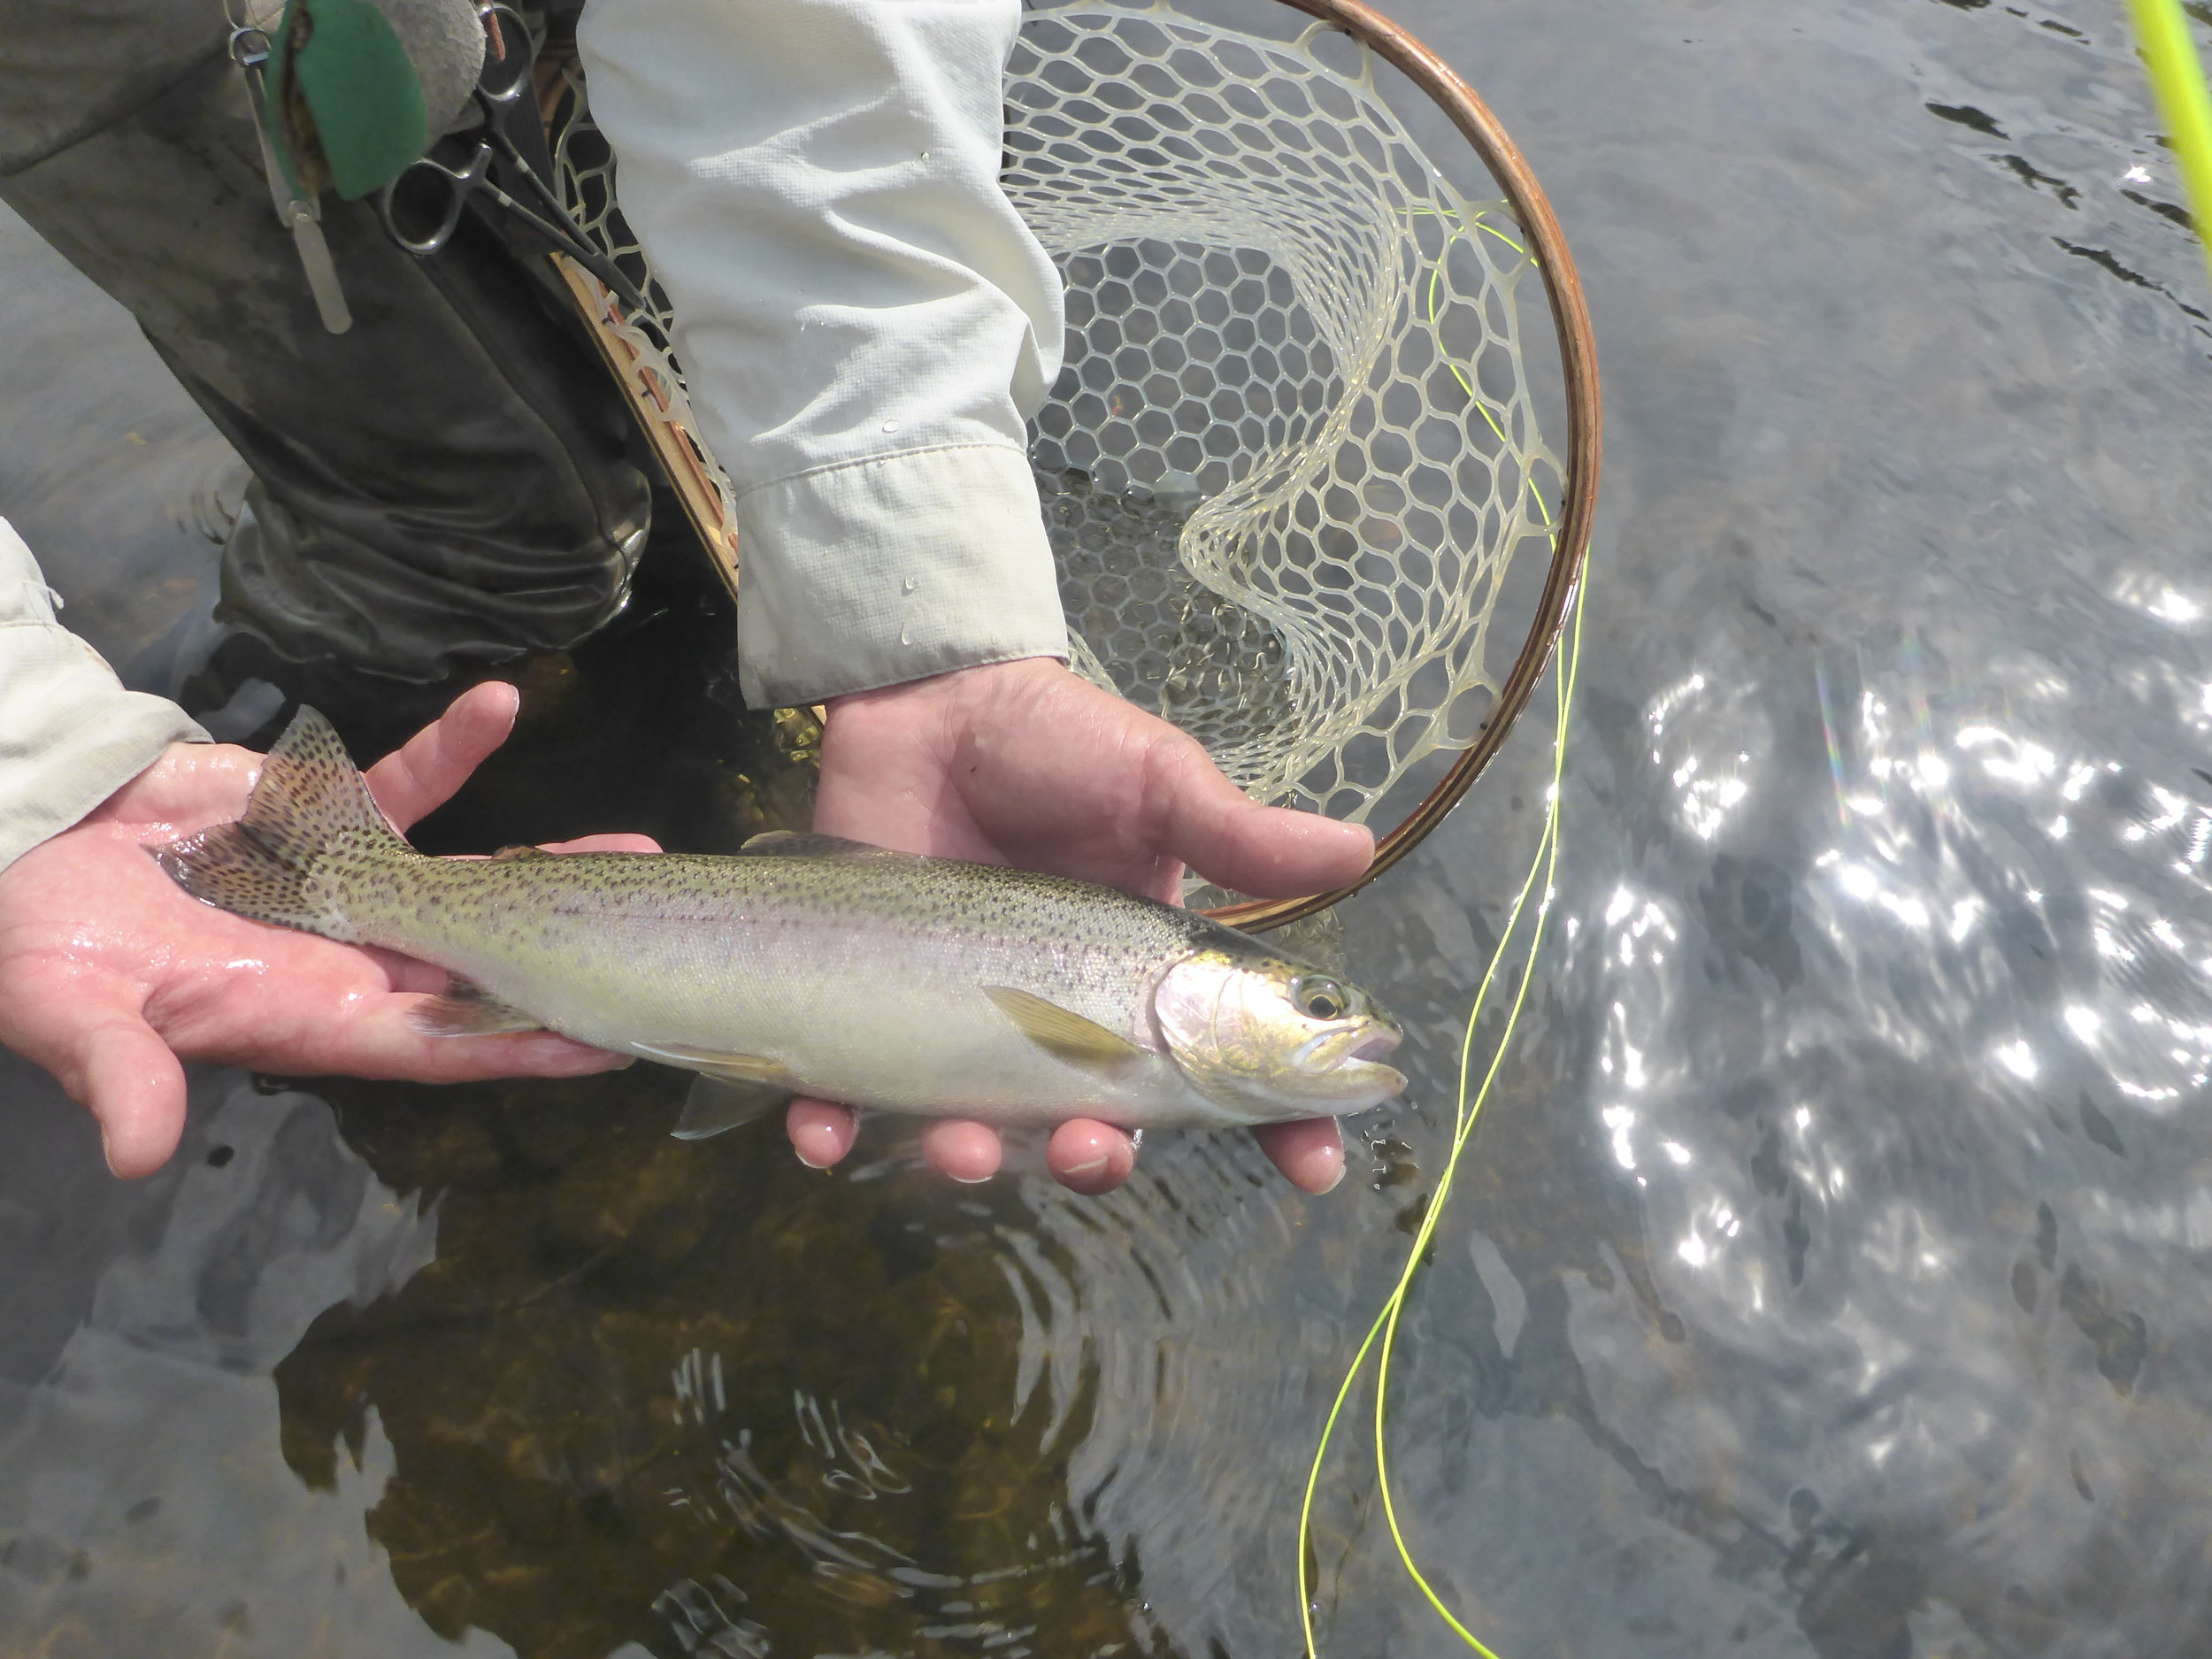 We have seen many fish of this year class this season...bodes well for next year!